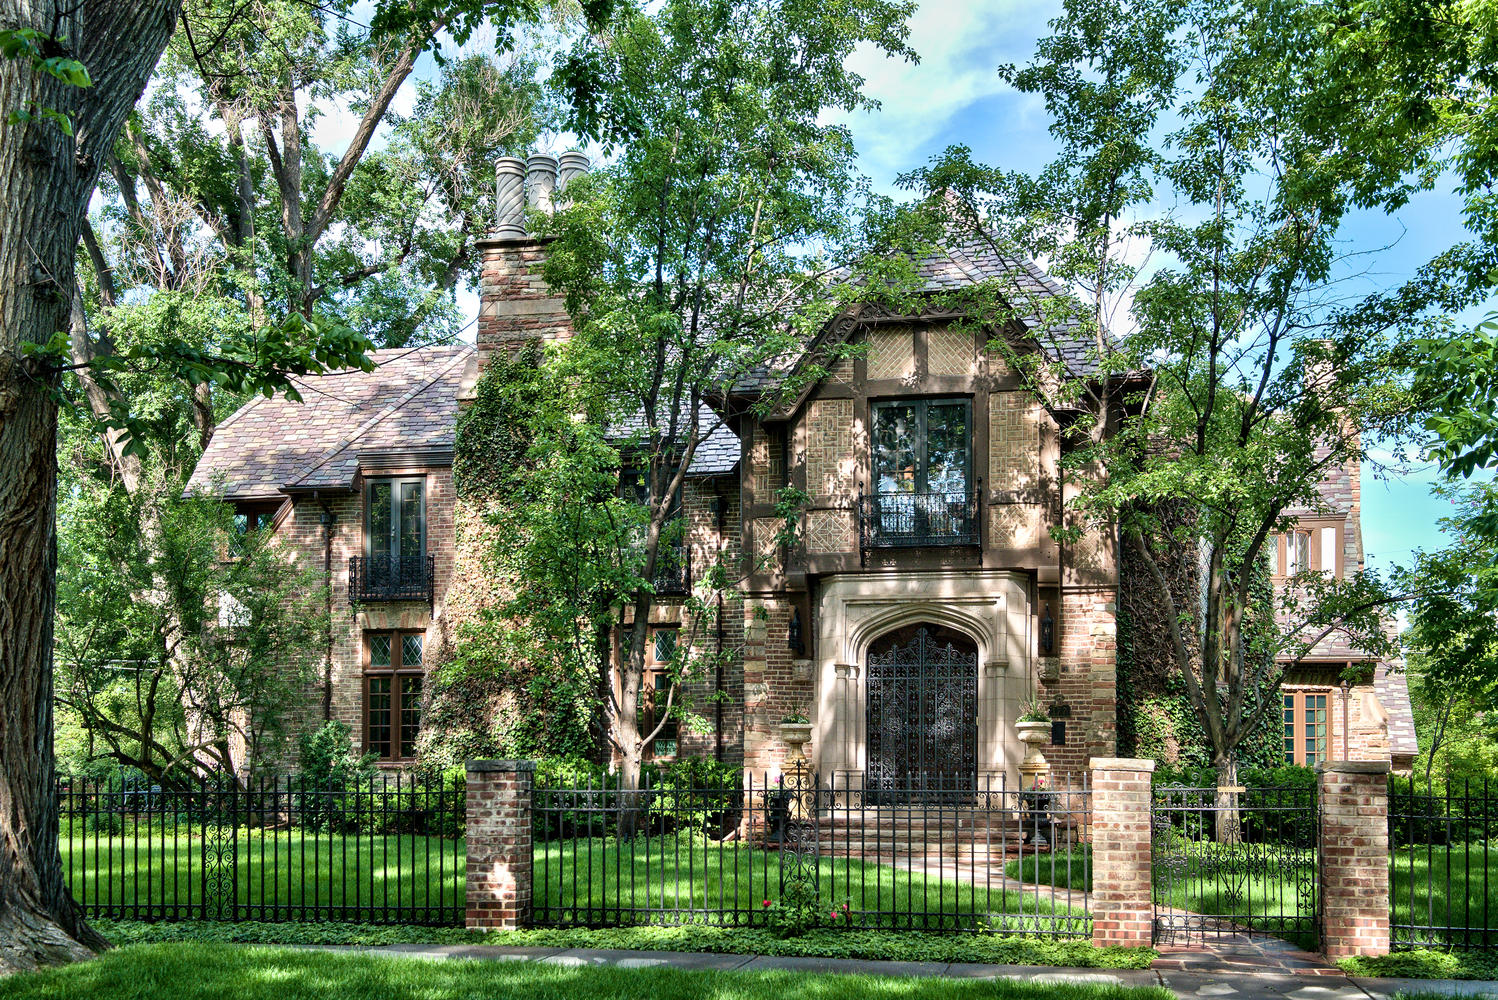 一戸建て のために 売買 アット Grand 1930's Ivy Covered Tudor Gracefully Poised Behind Wrought Iron Gates 177 N. Humboldt Street Country Club, Denver, コロラド, 80218 アメリカ合衆国